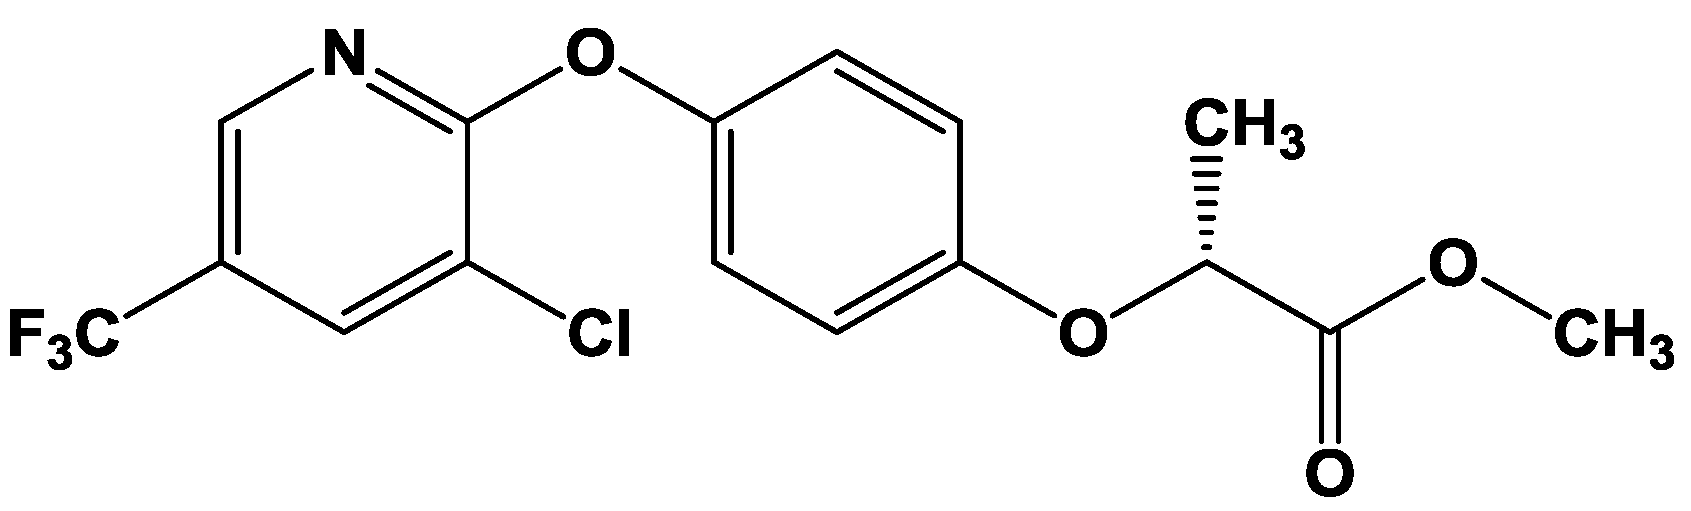 aryloxy phenoxy propionate